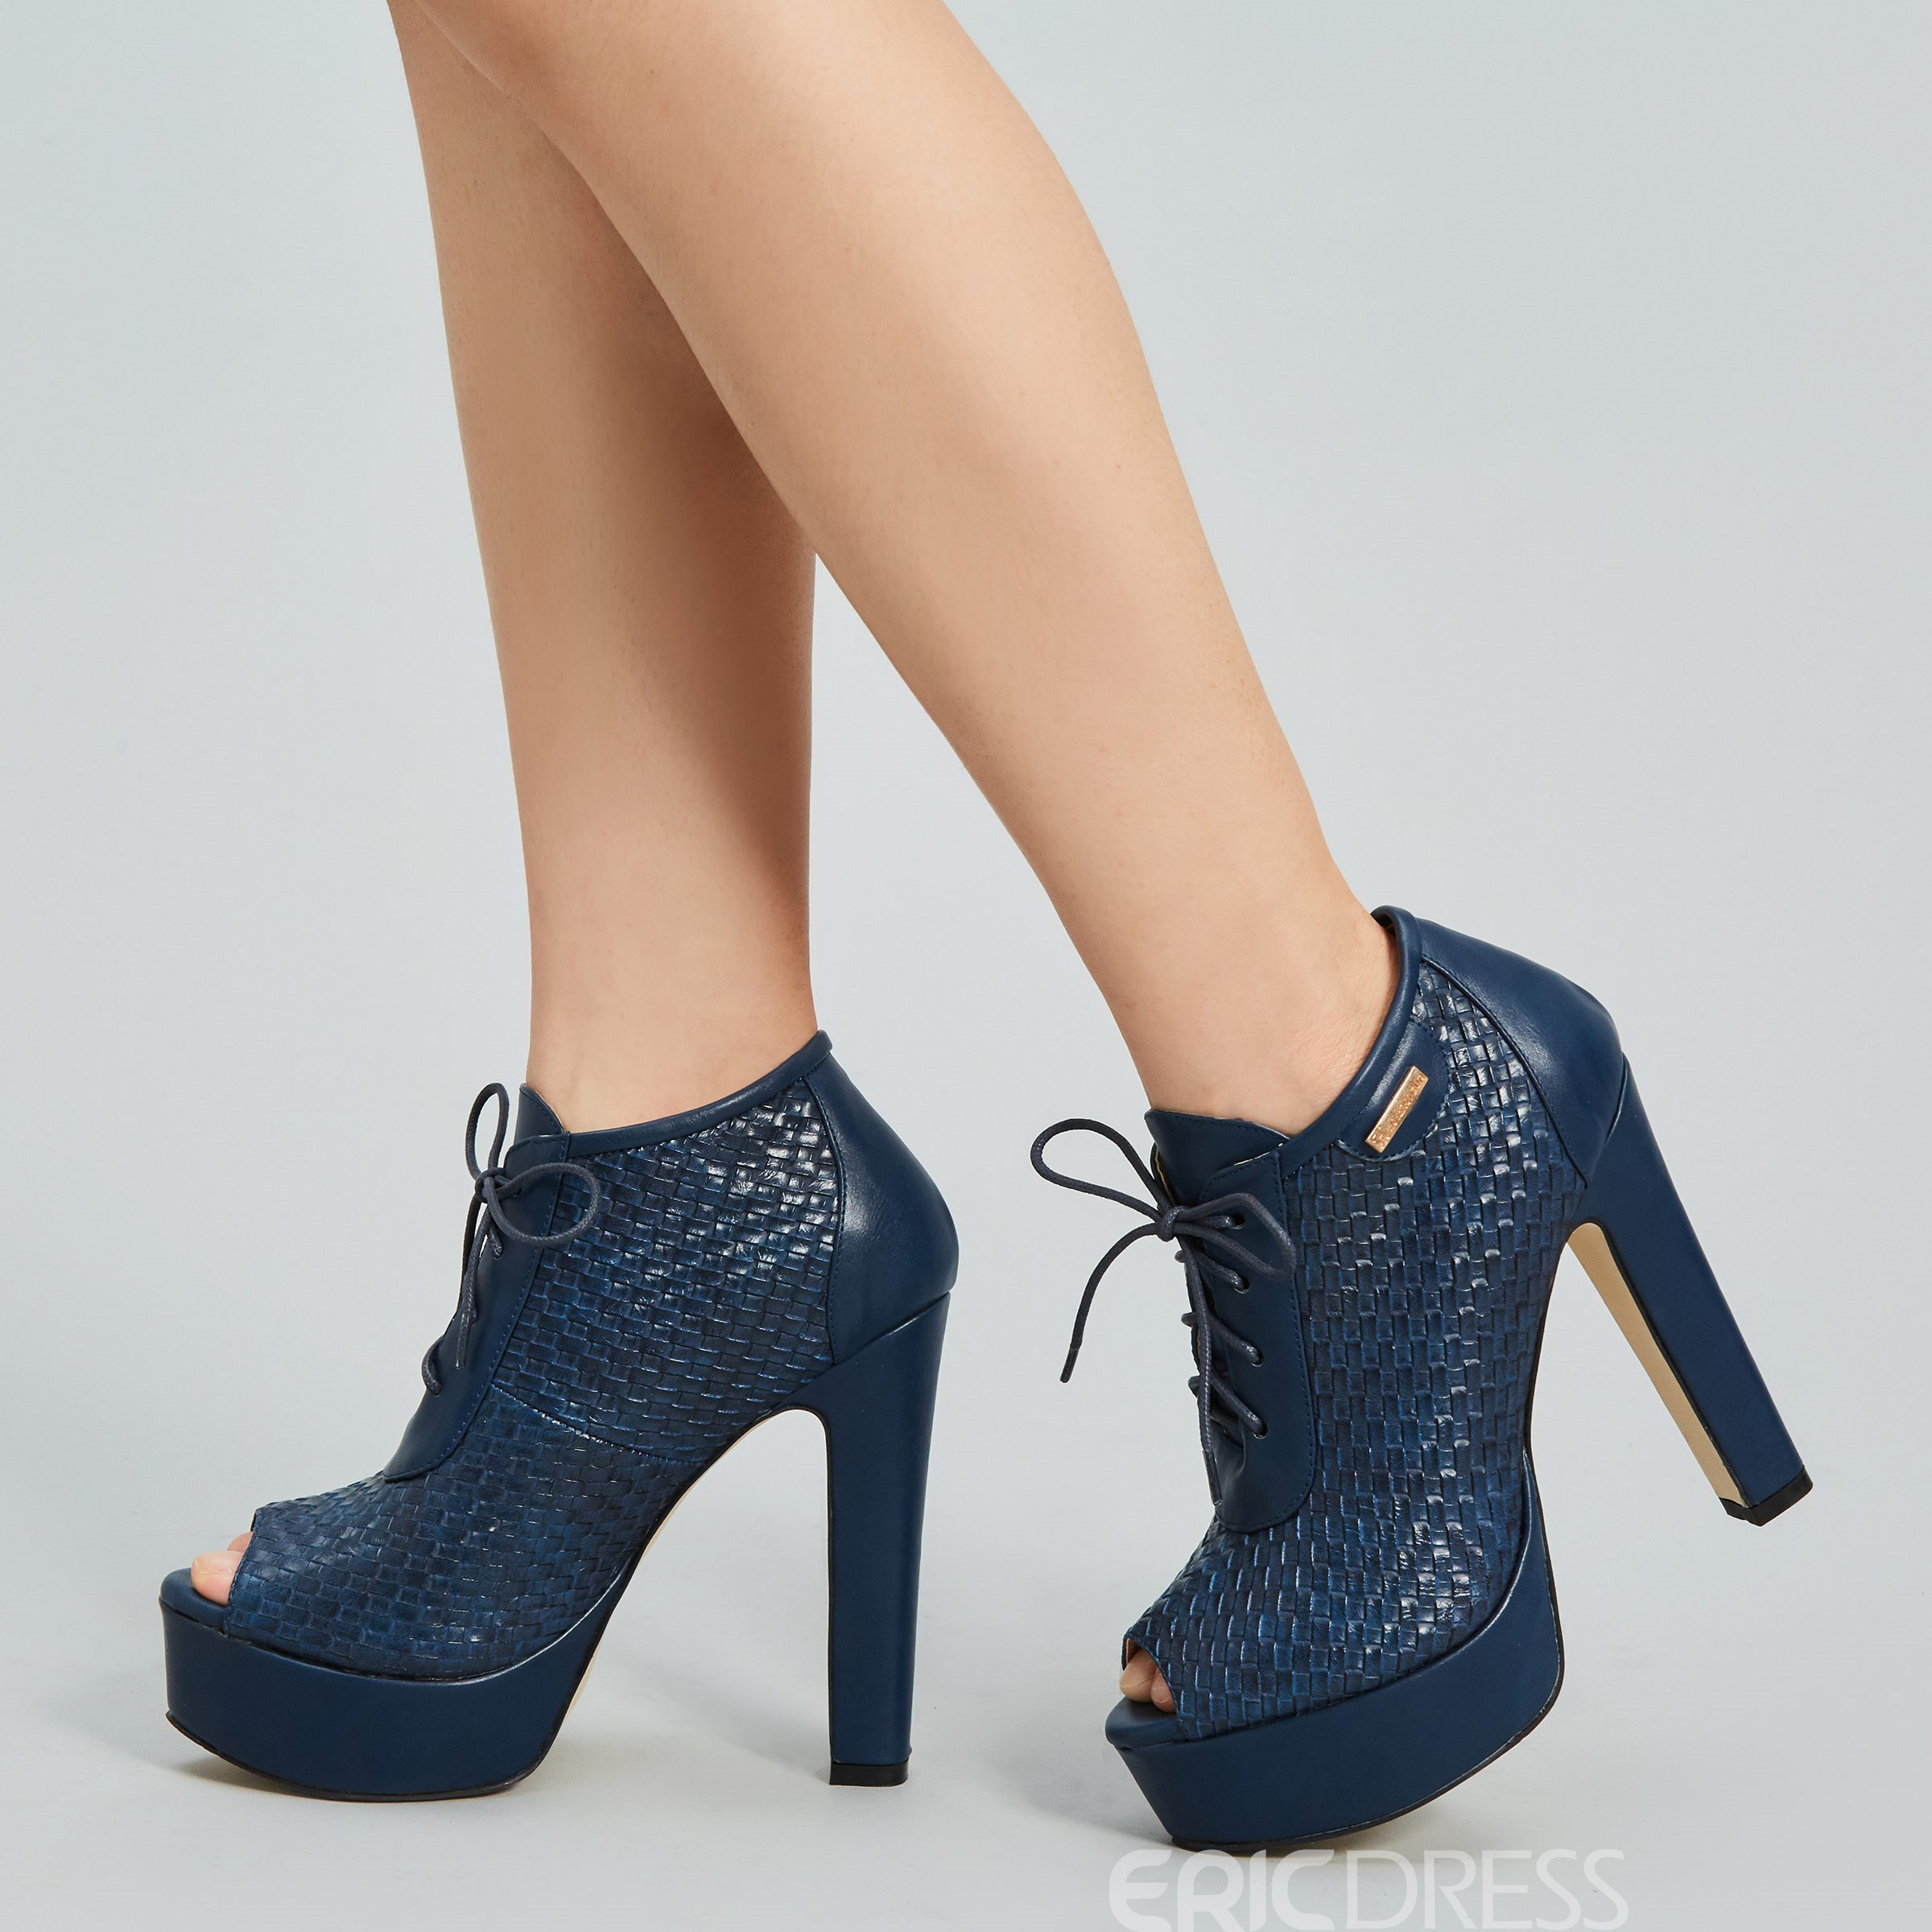 Ericdress Platform Peep Toe Lace up High Heel Boots